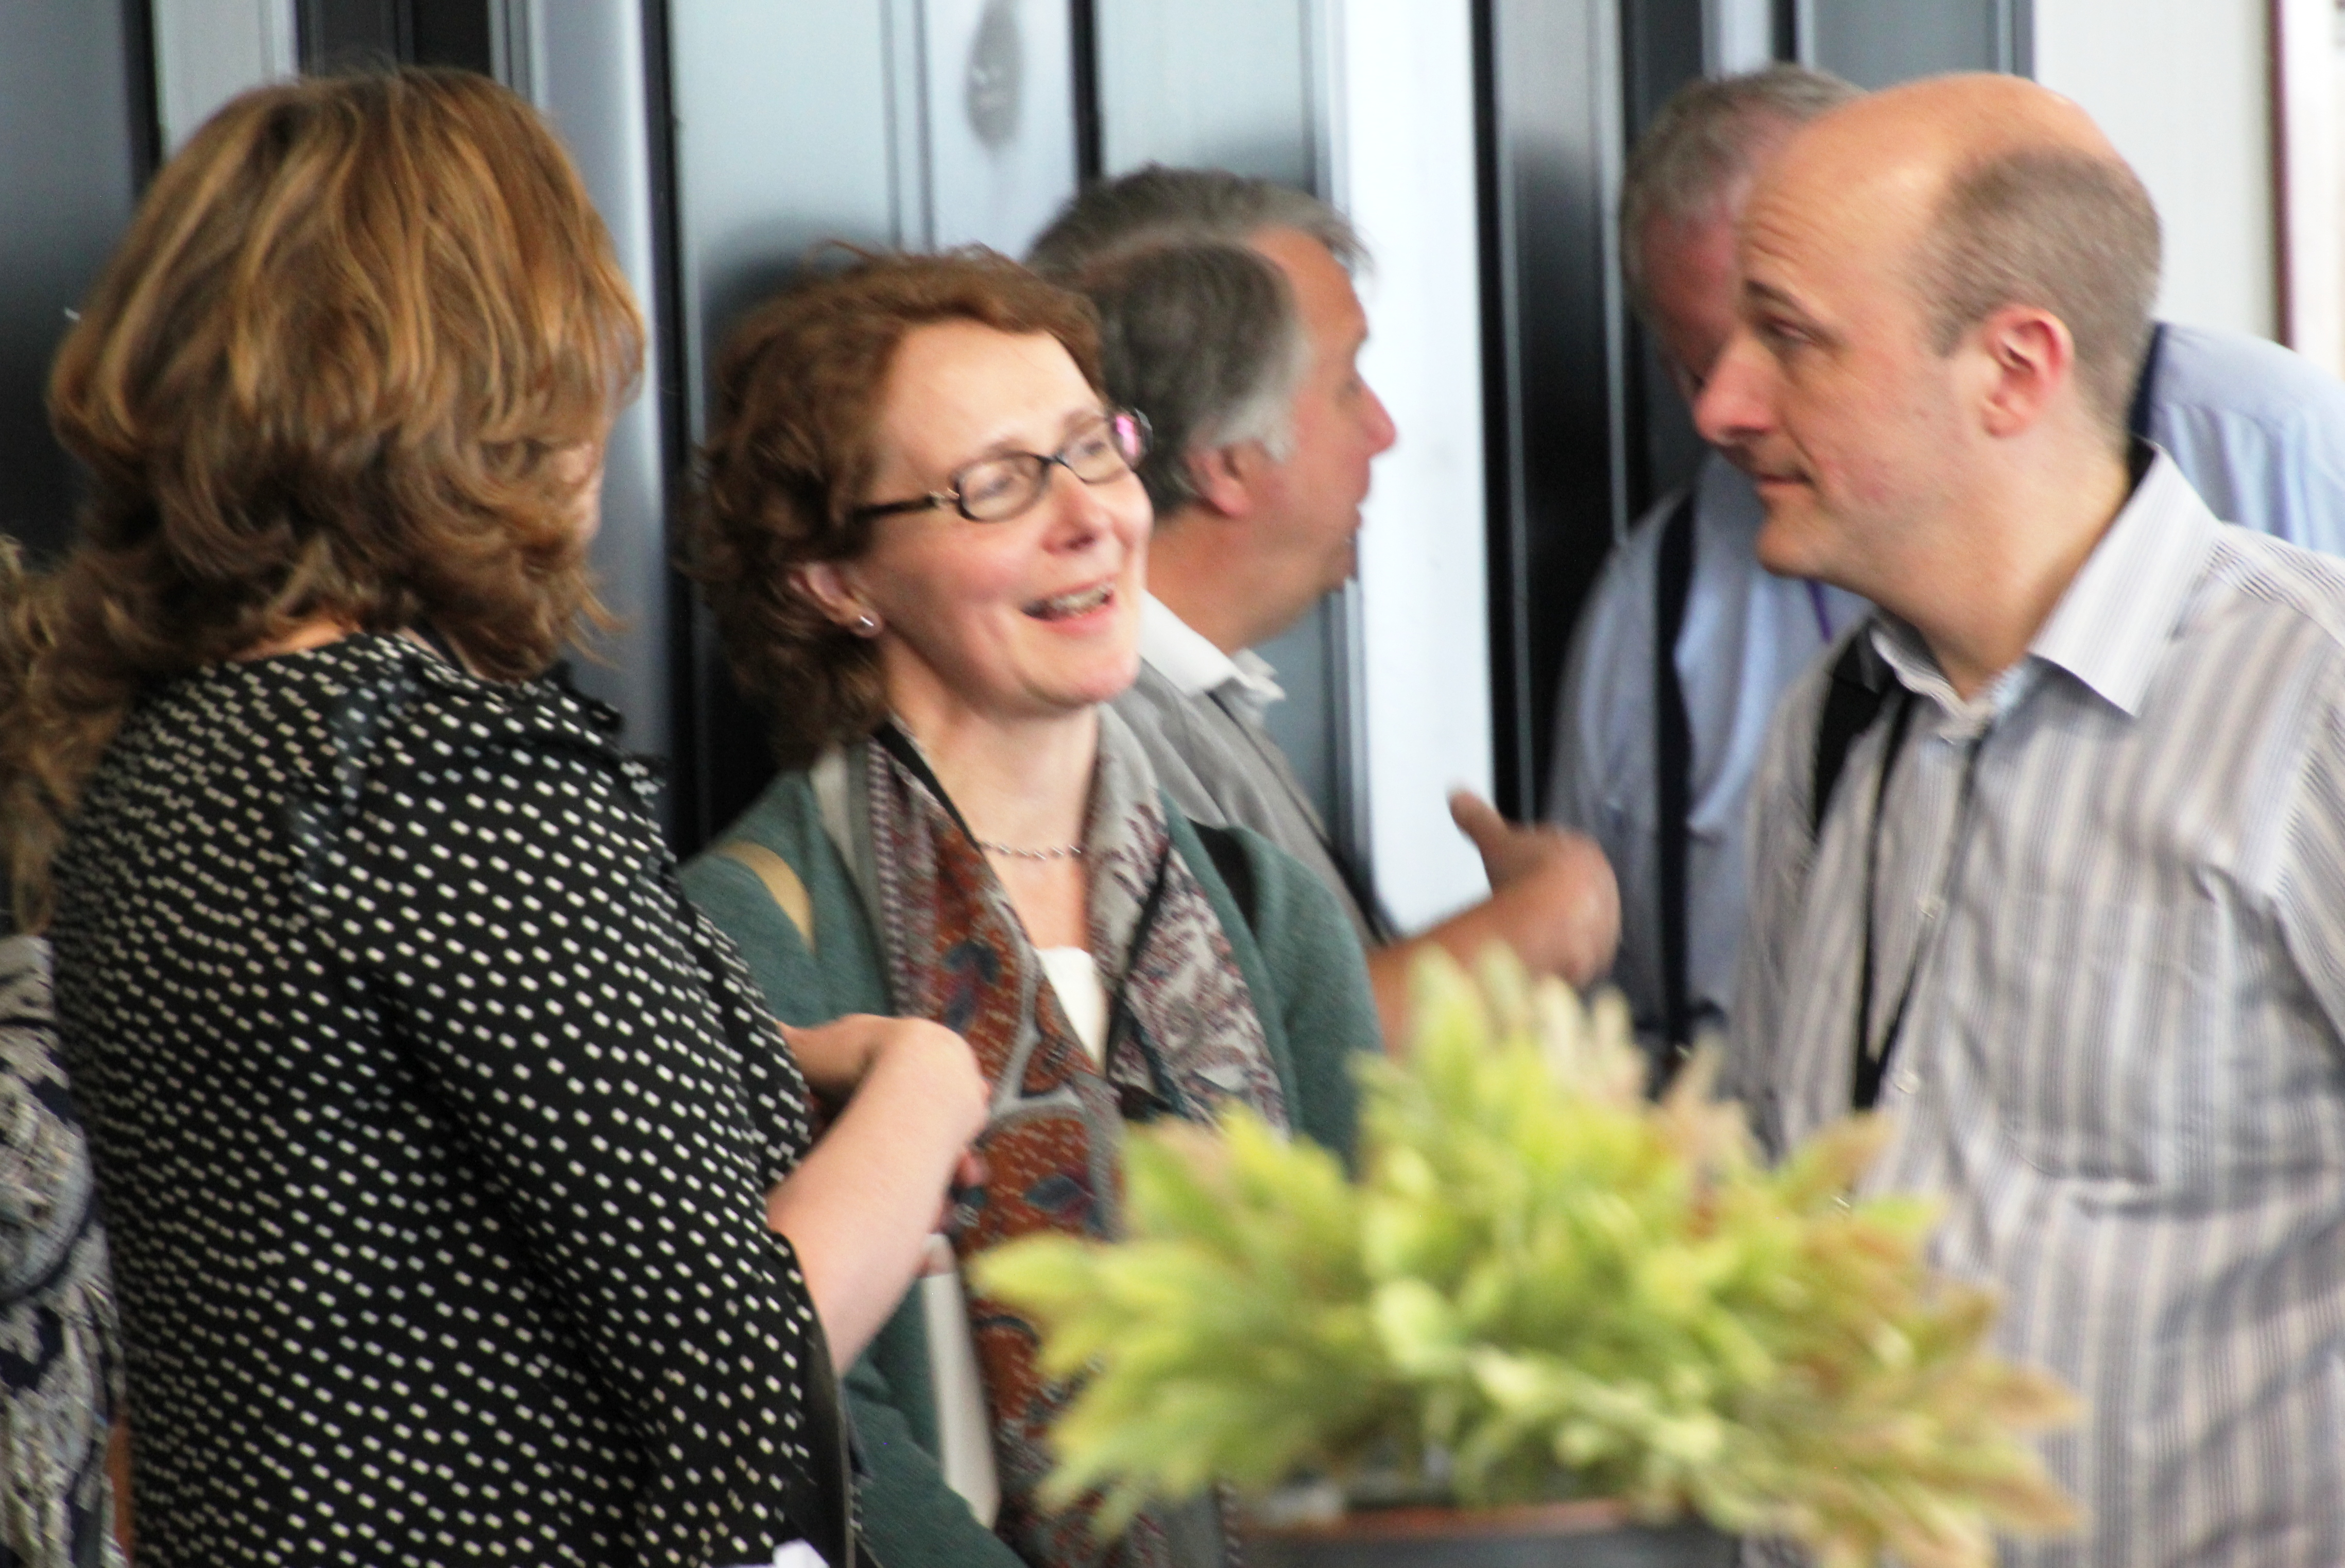 NLP Conference networking